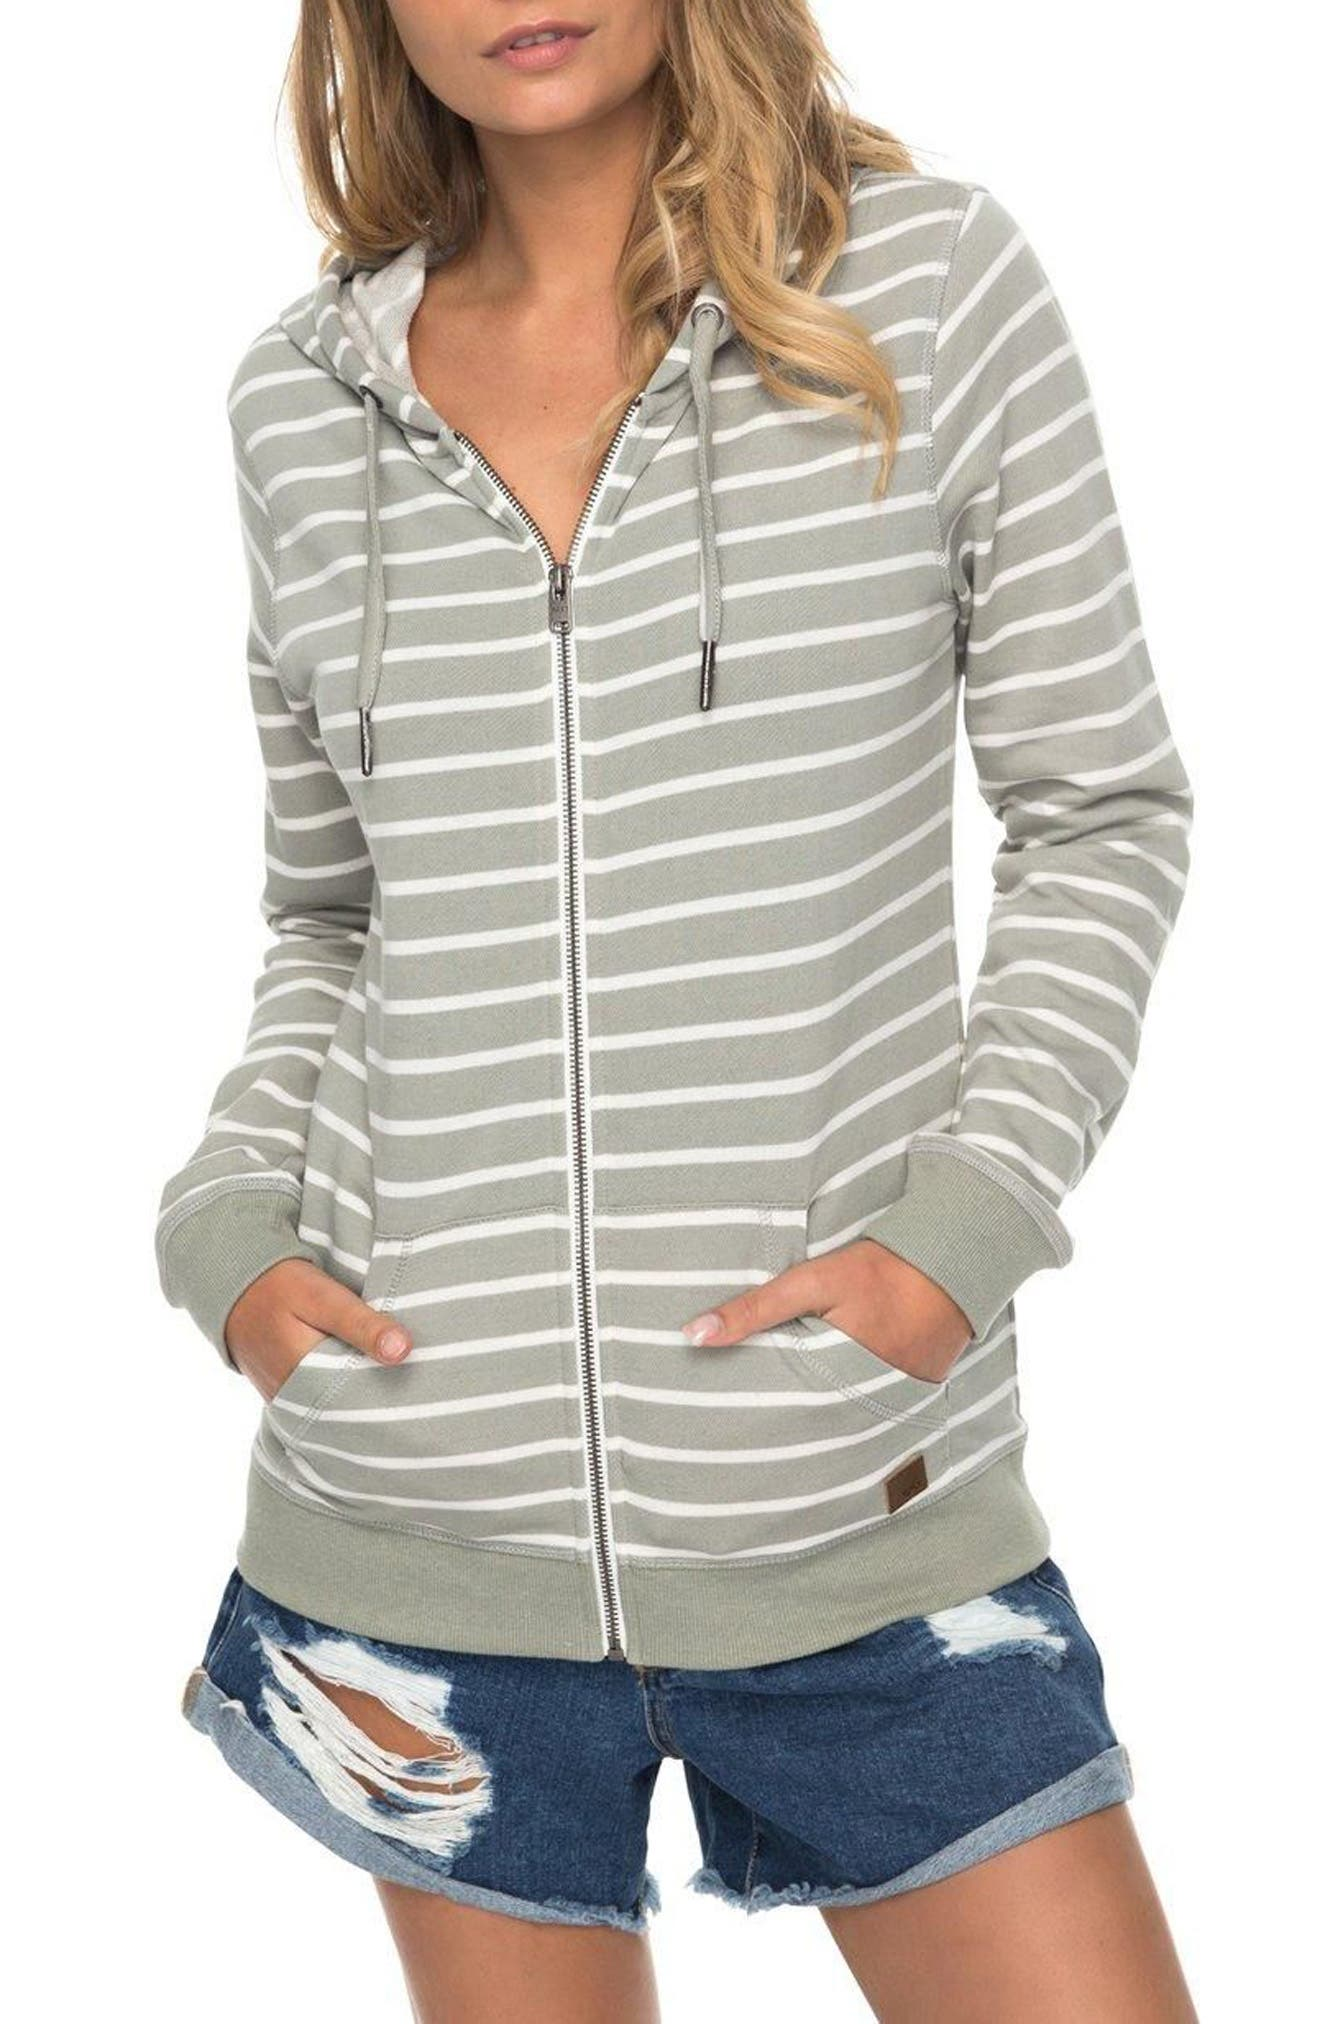 Alternate Image 1 Selected - Roxy Trippin Stripe Hoodie